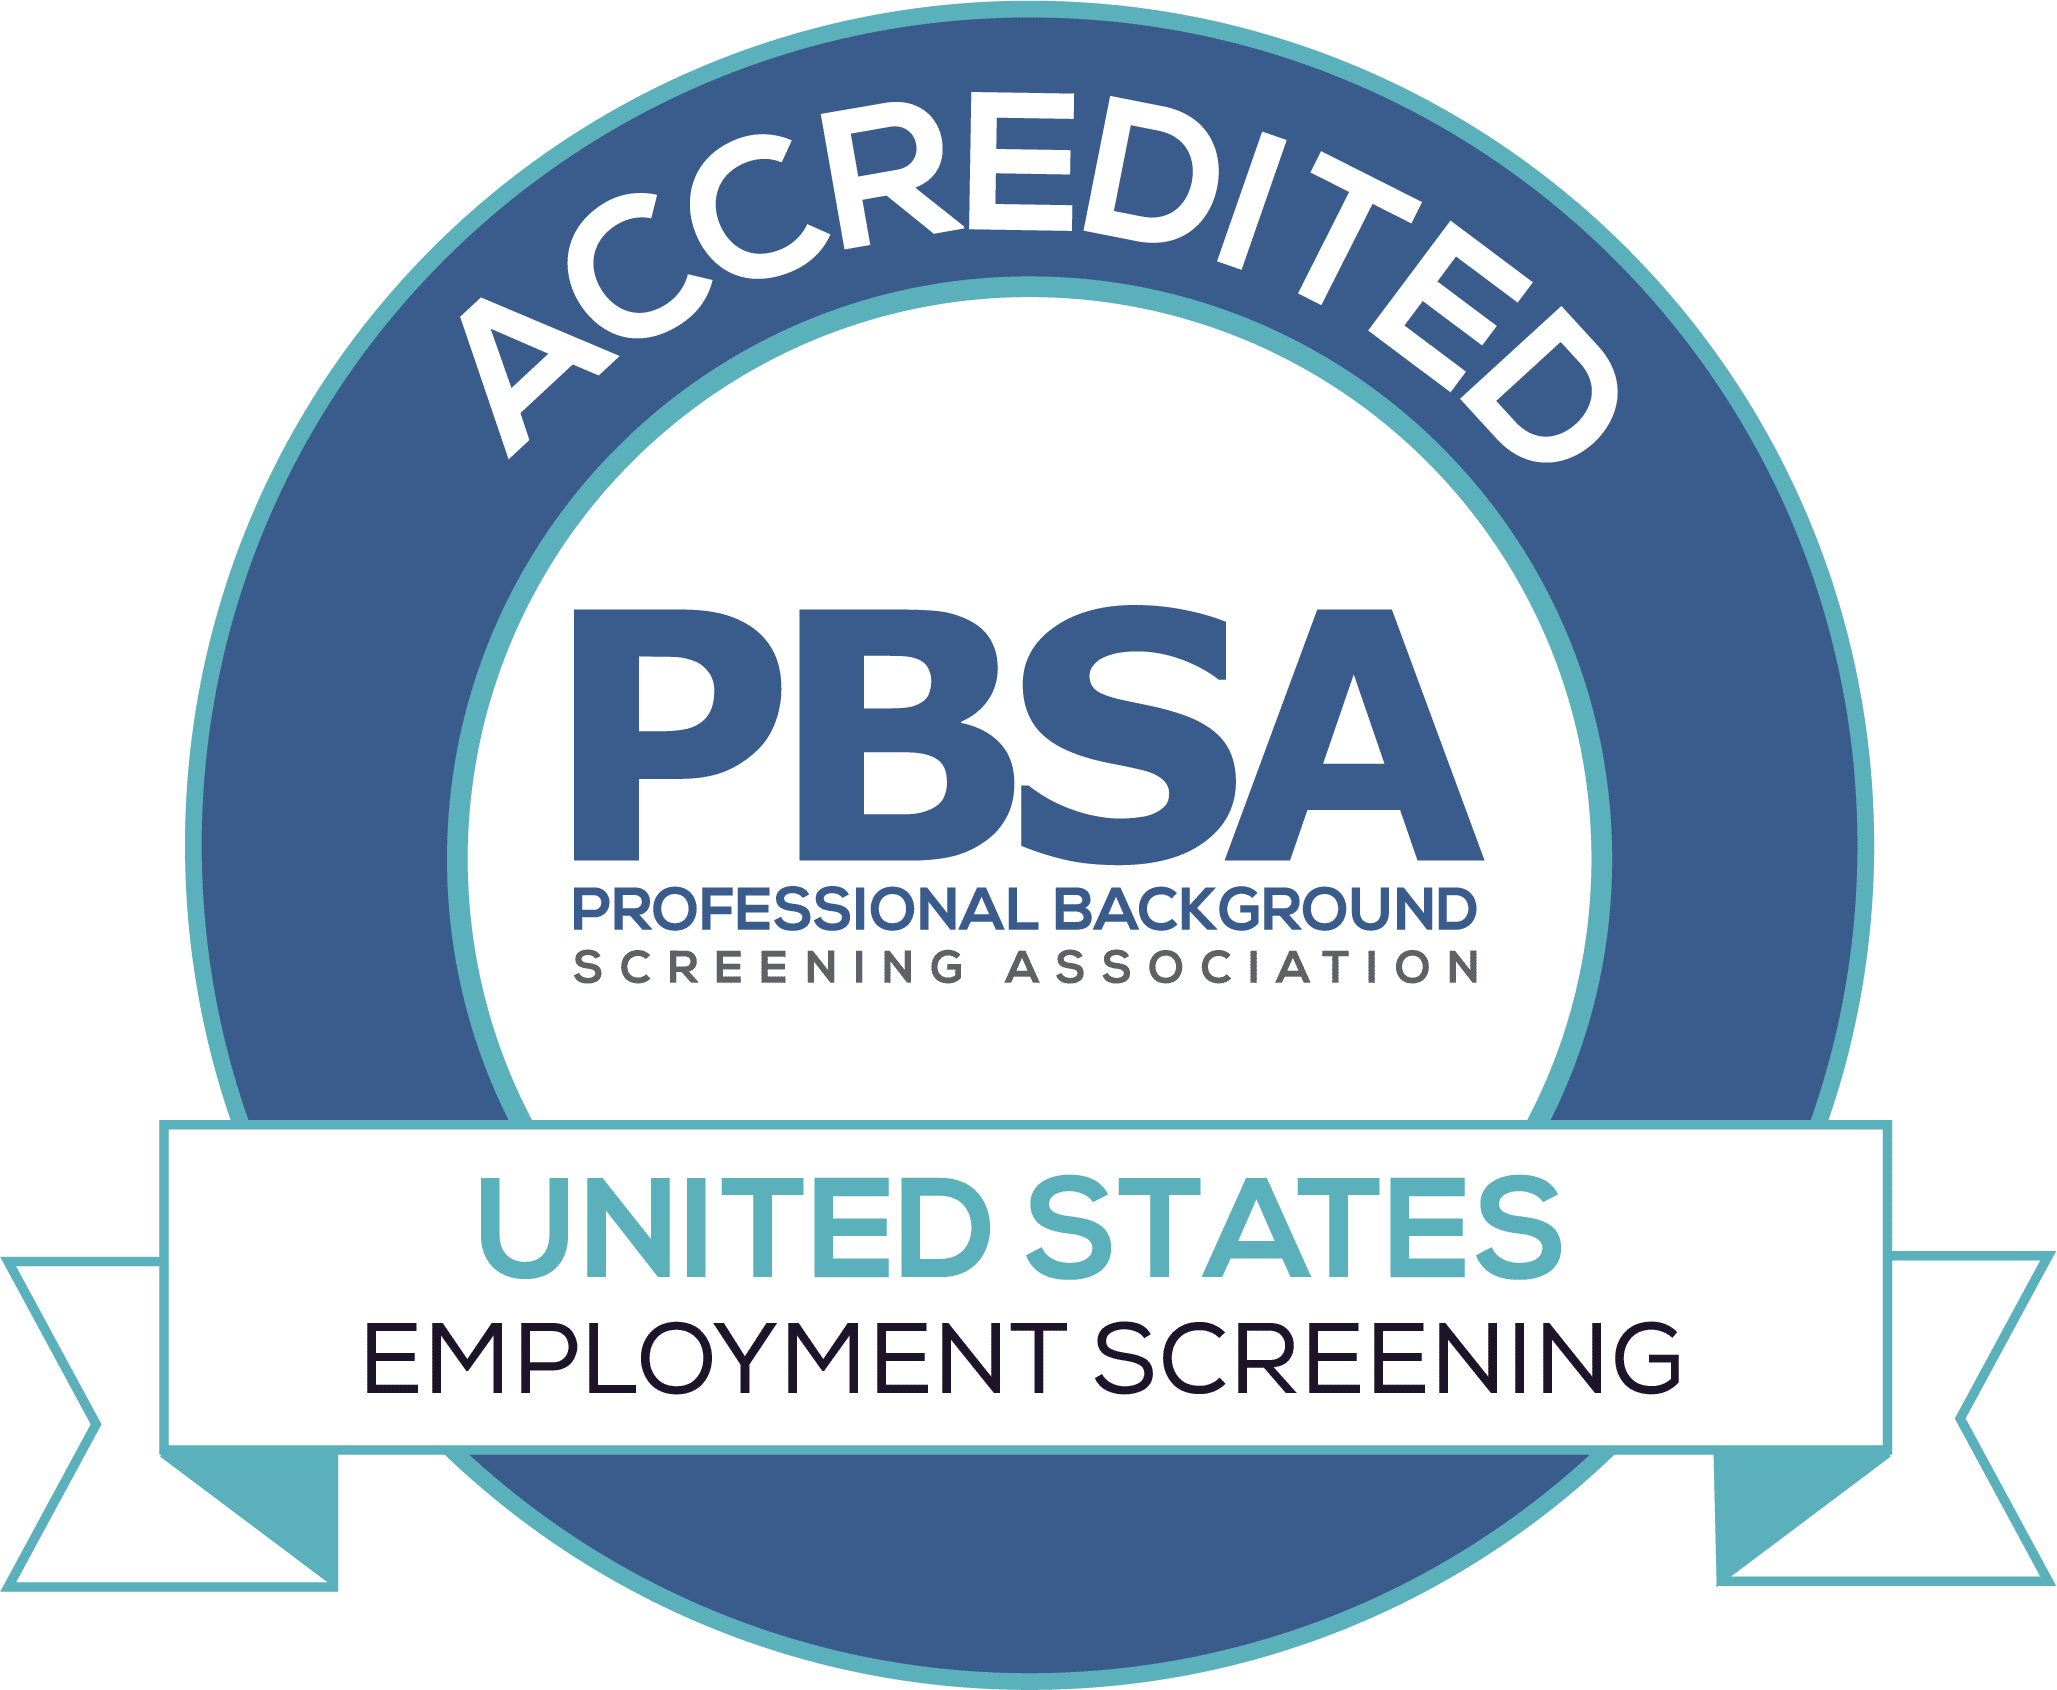 PBSA Accreditation Seal